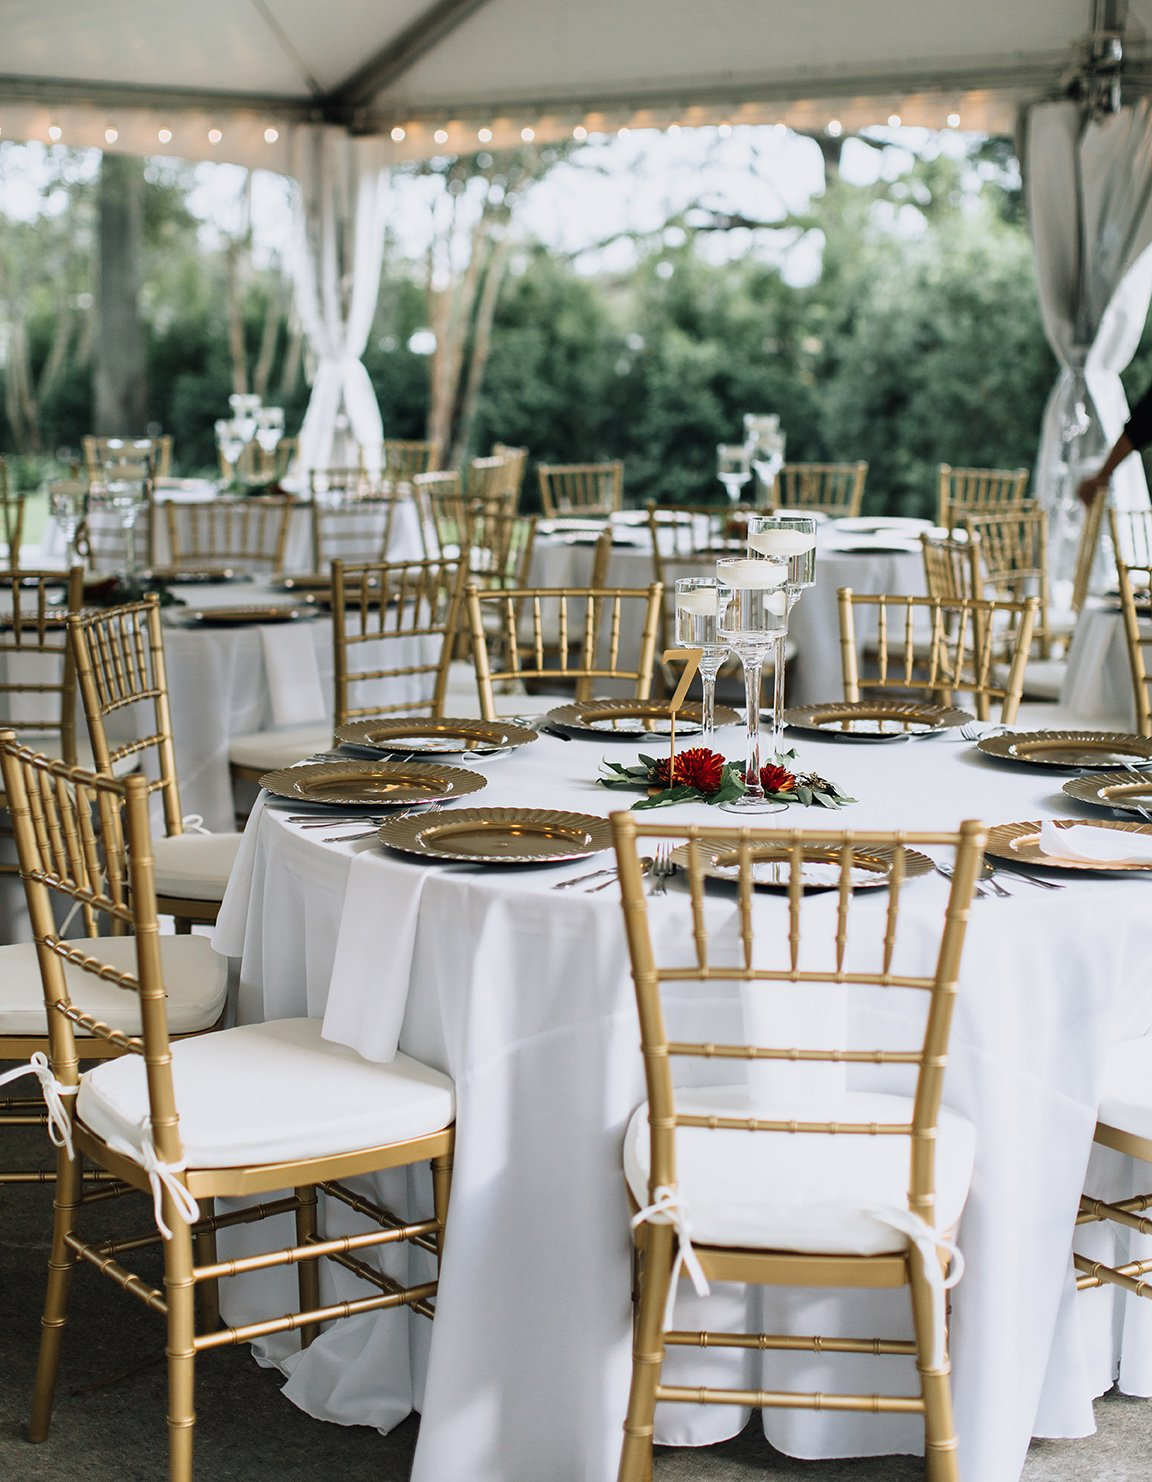 texas, real wedding, outdoor reception, garden wedding, gold chairs, tent